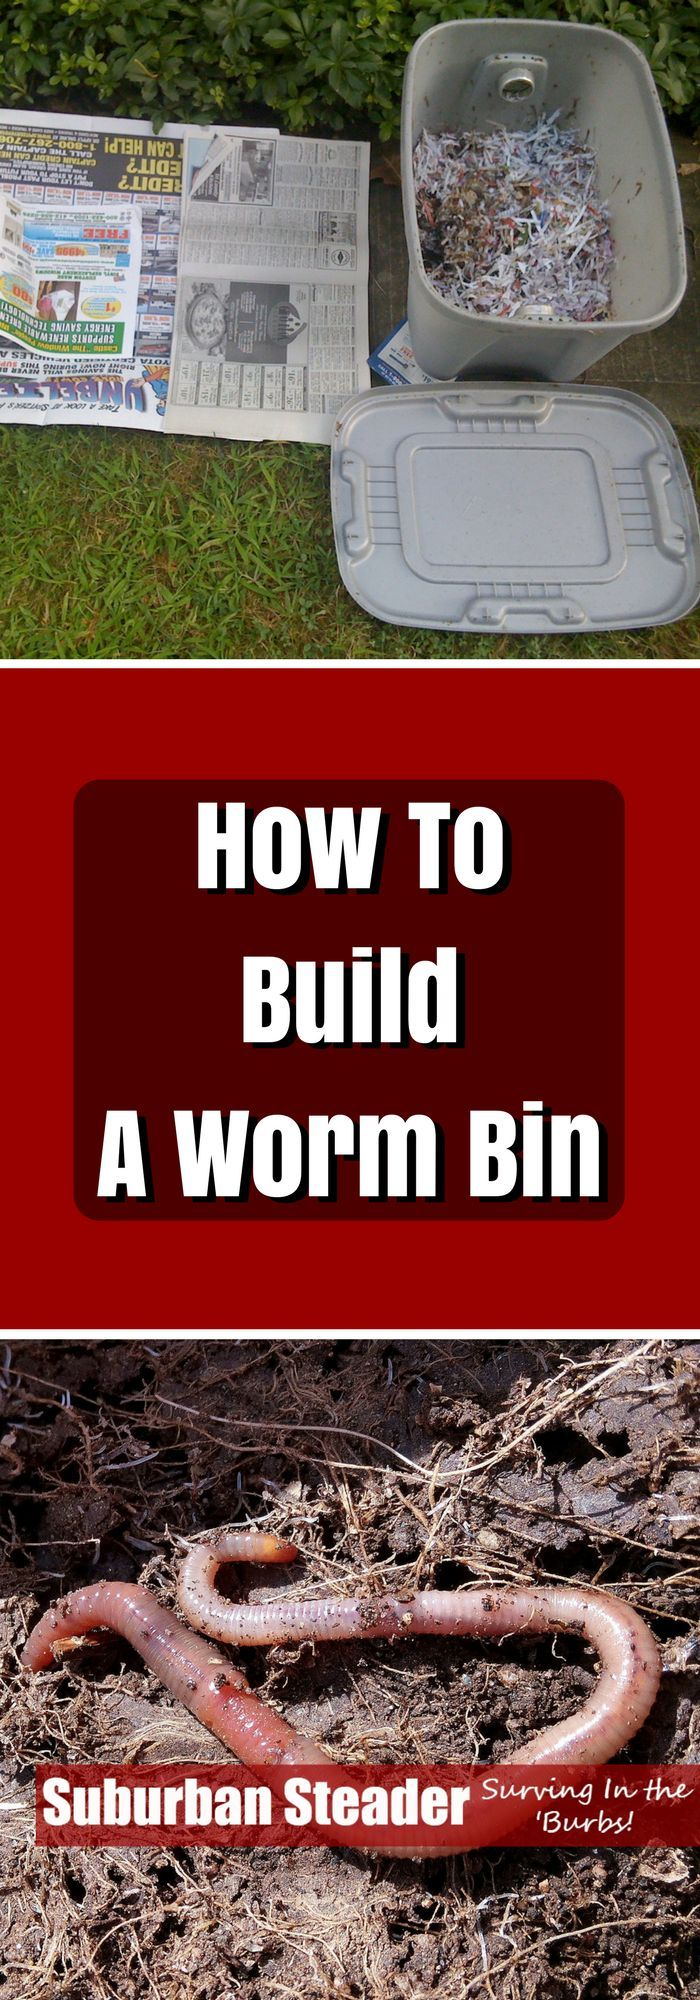 Interested in adding livestock to your suburban homestead but not sure how to do it? How about starting with worms - and building a worm bin! Find out how!